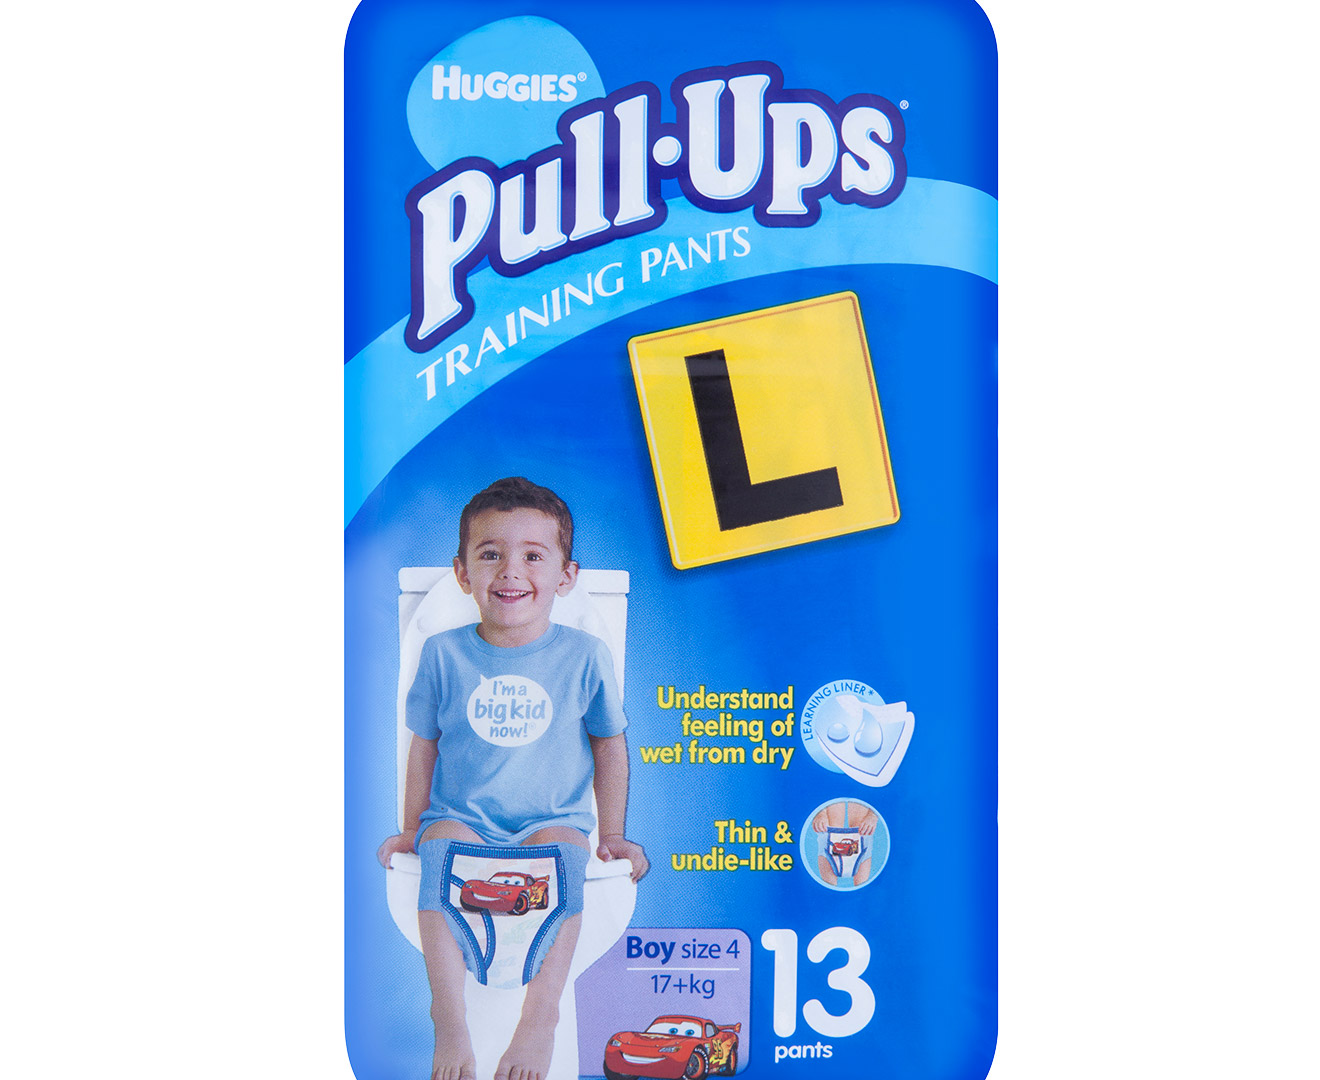 Or the *Morrisons Size 4+ Pullups* with one of those Tots Bots Wraps over the top for extra waterproofing? Or a fleece liner inside a nappy to soak up excess? (Google ReUsable Nappies for .